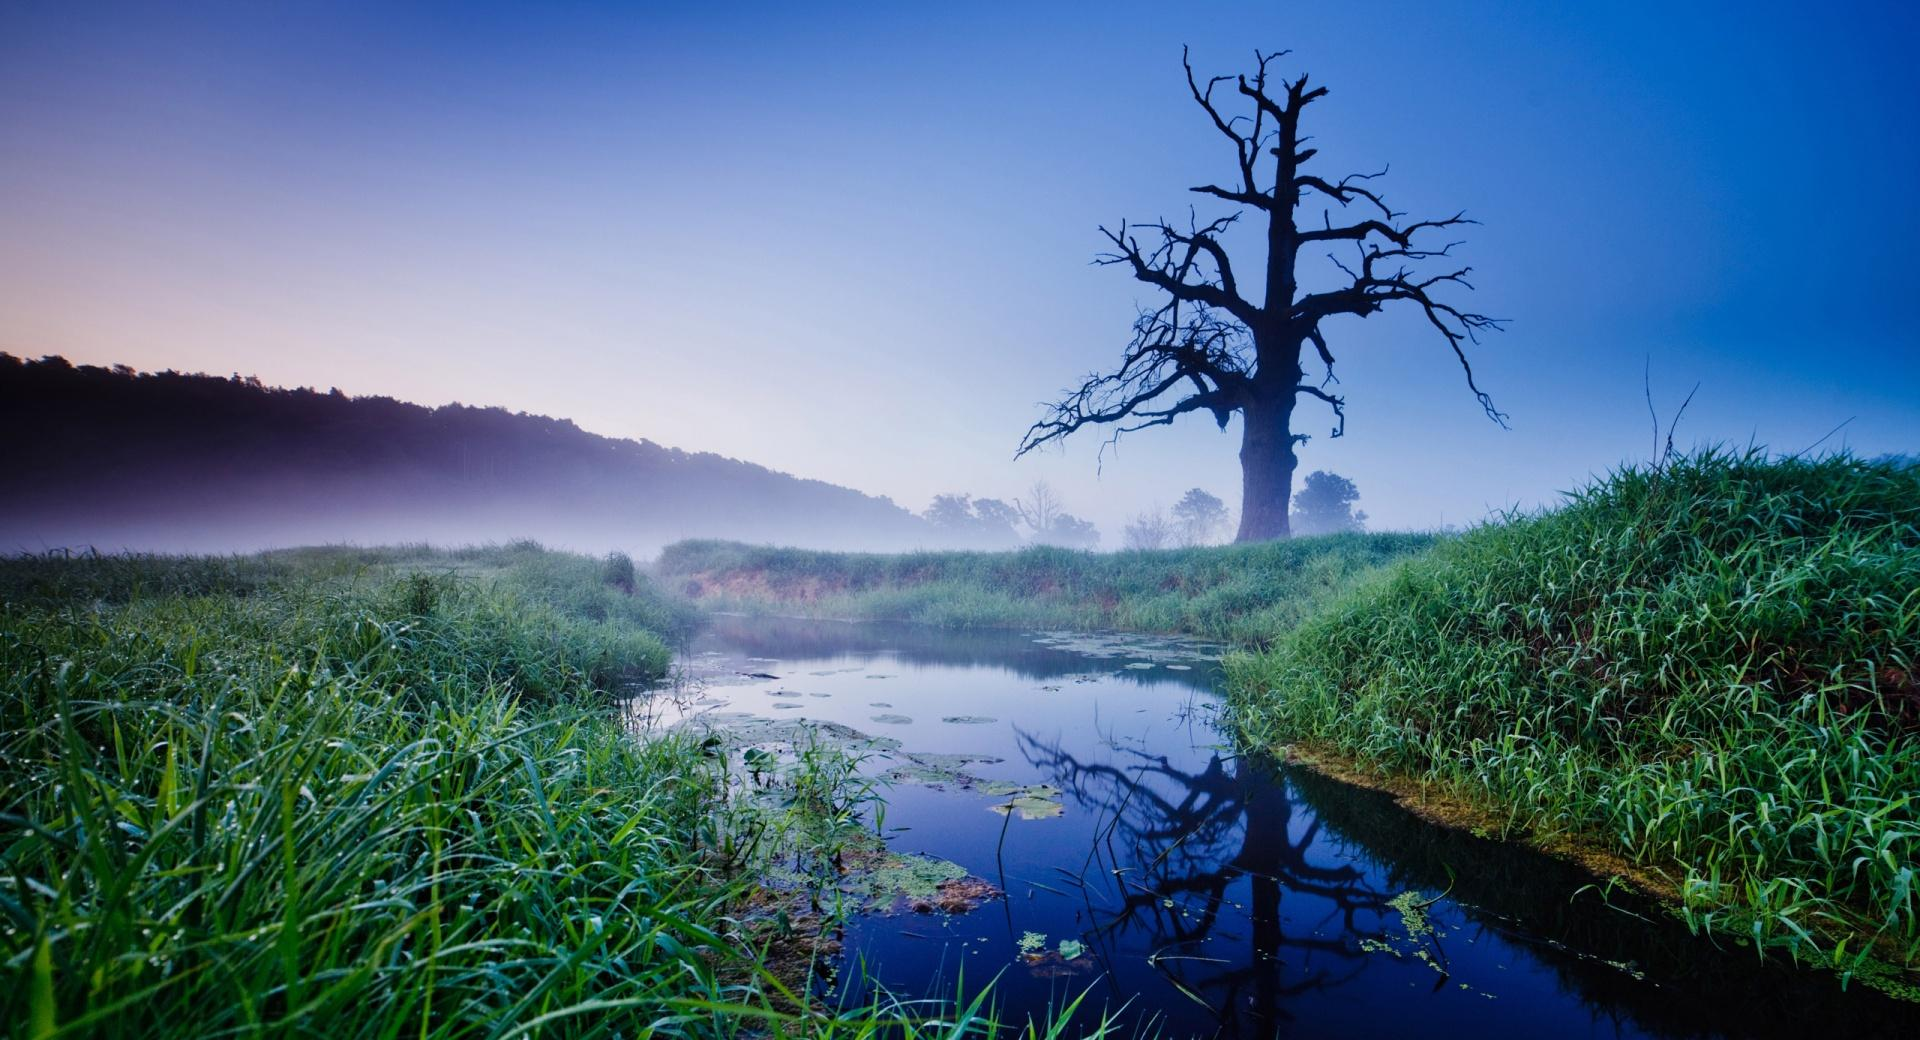 Misty Morning wallpapers HD quality